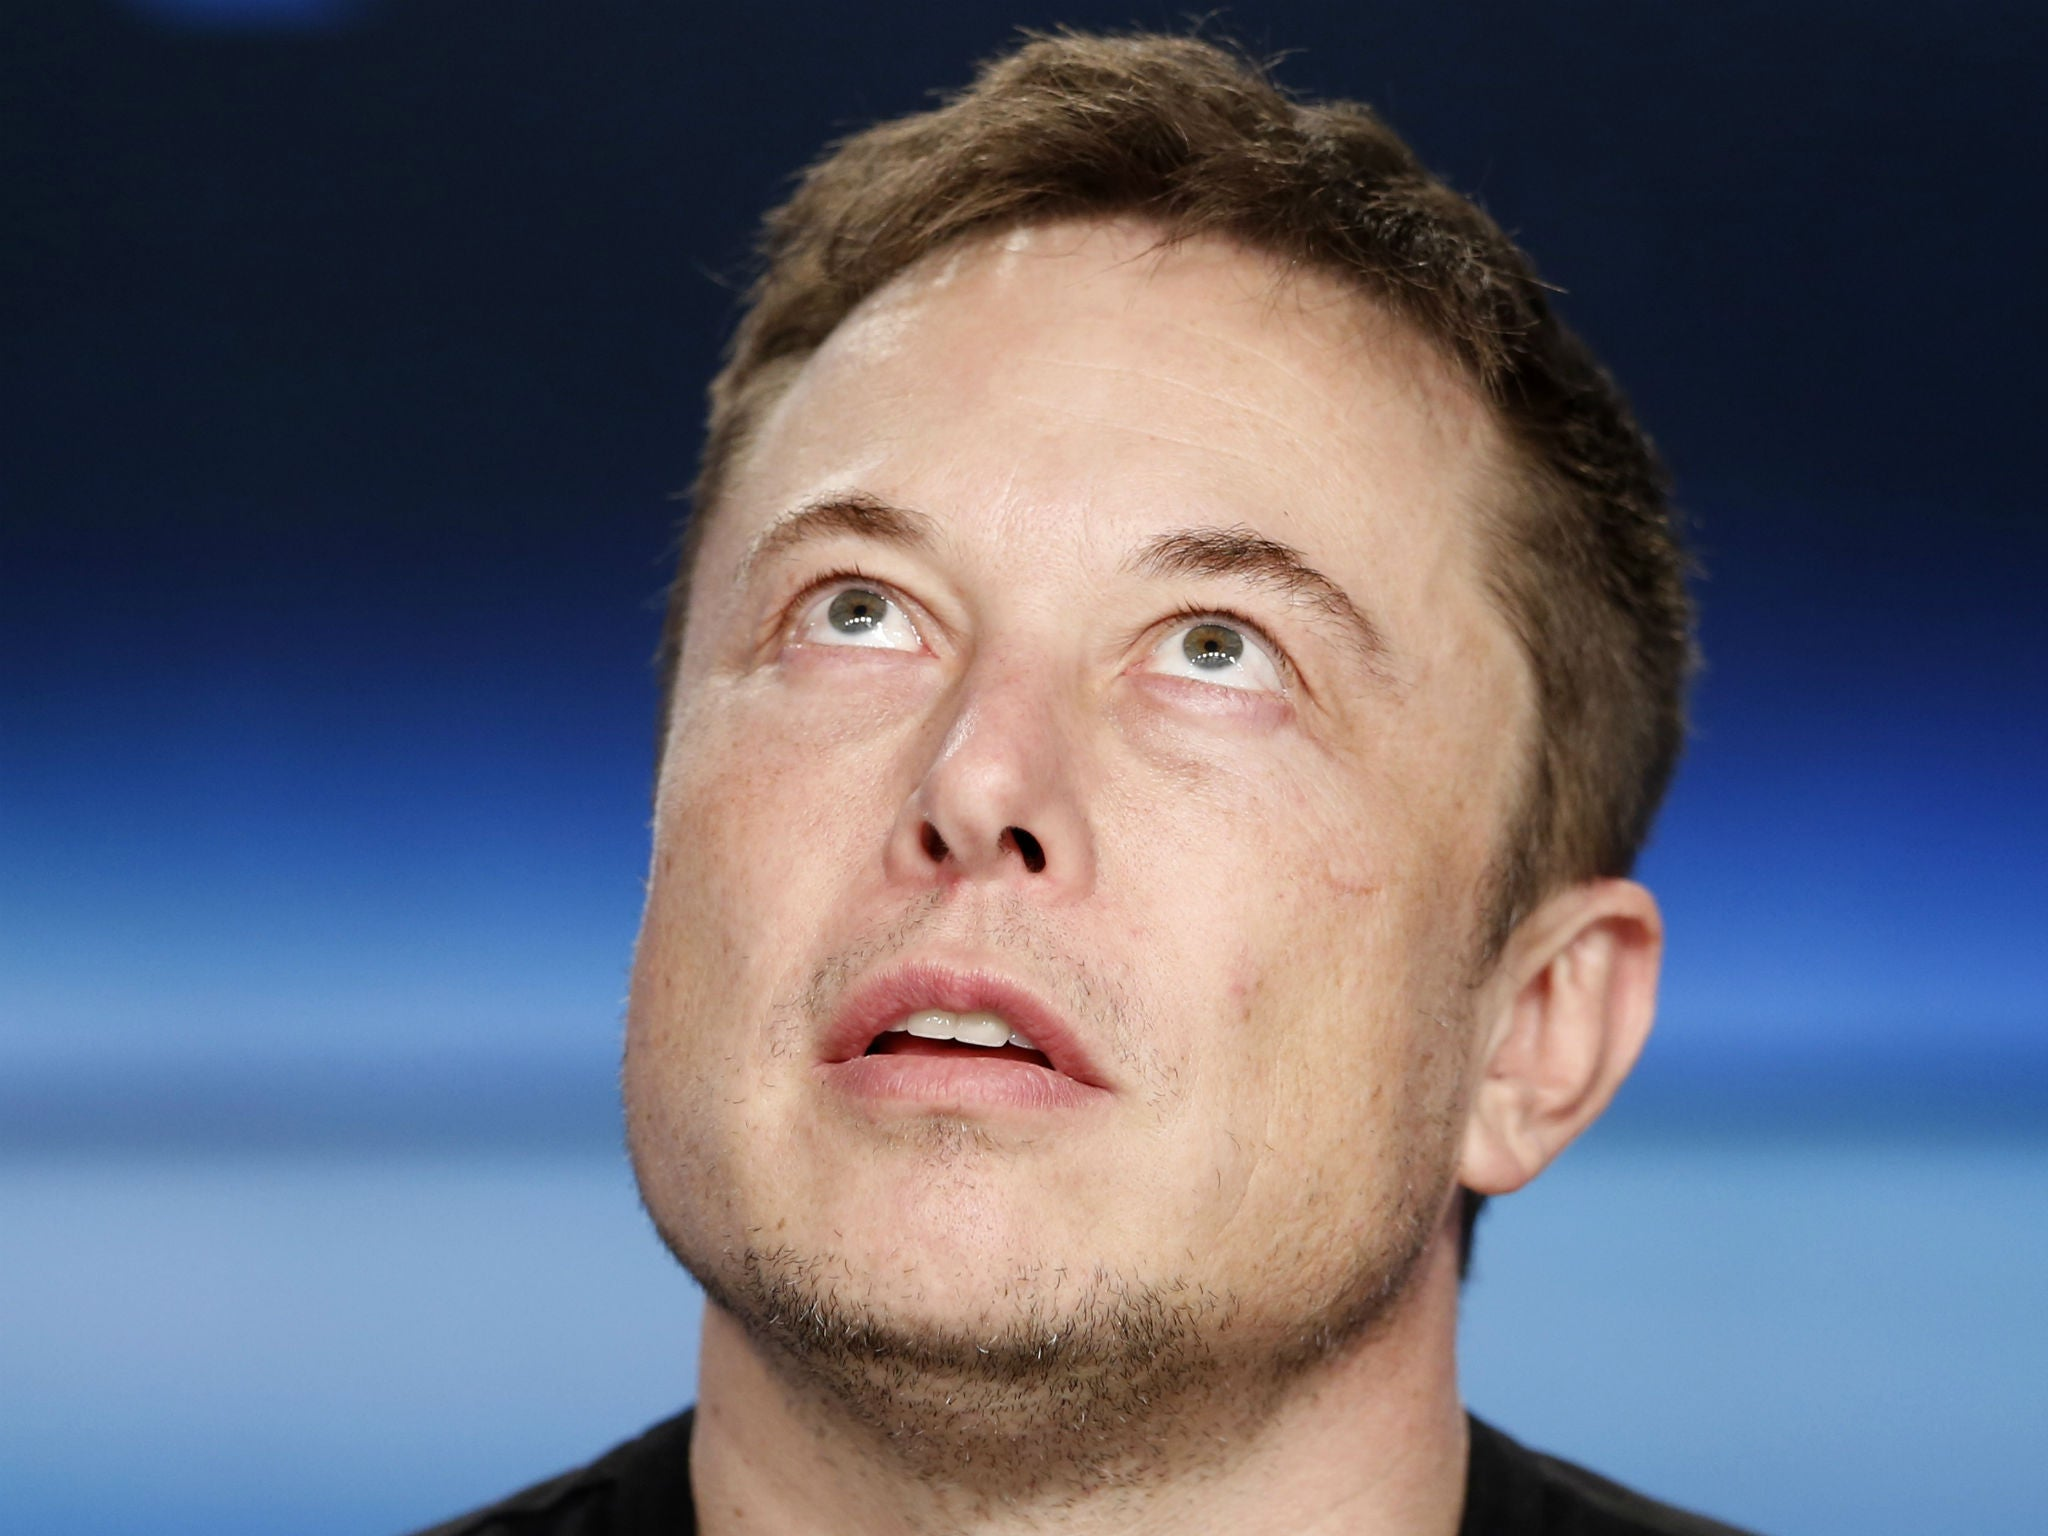 Elon Musk goaded into promising to fix Flint water problems